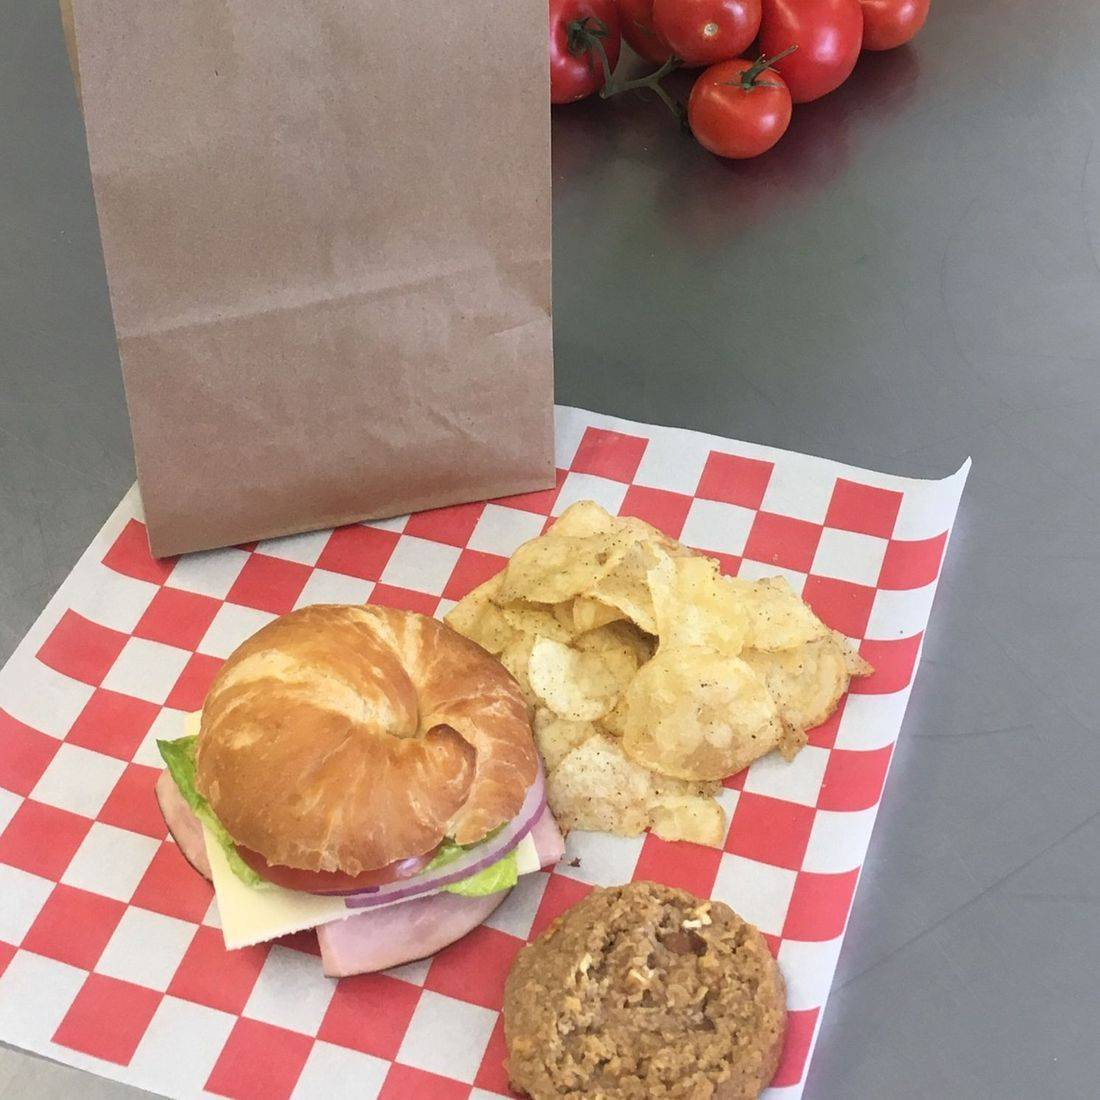 corporate lunches sack lunch